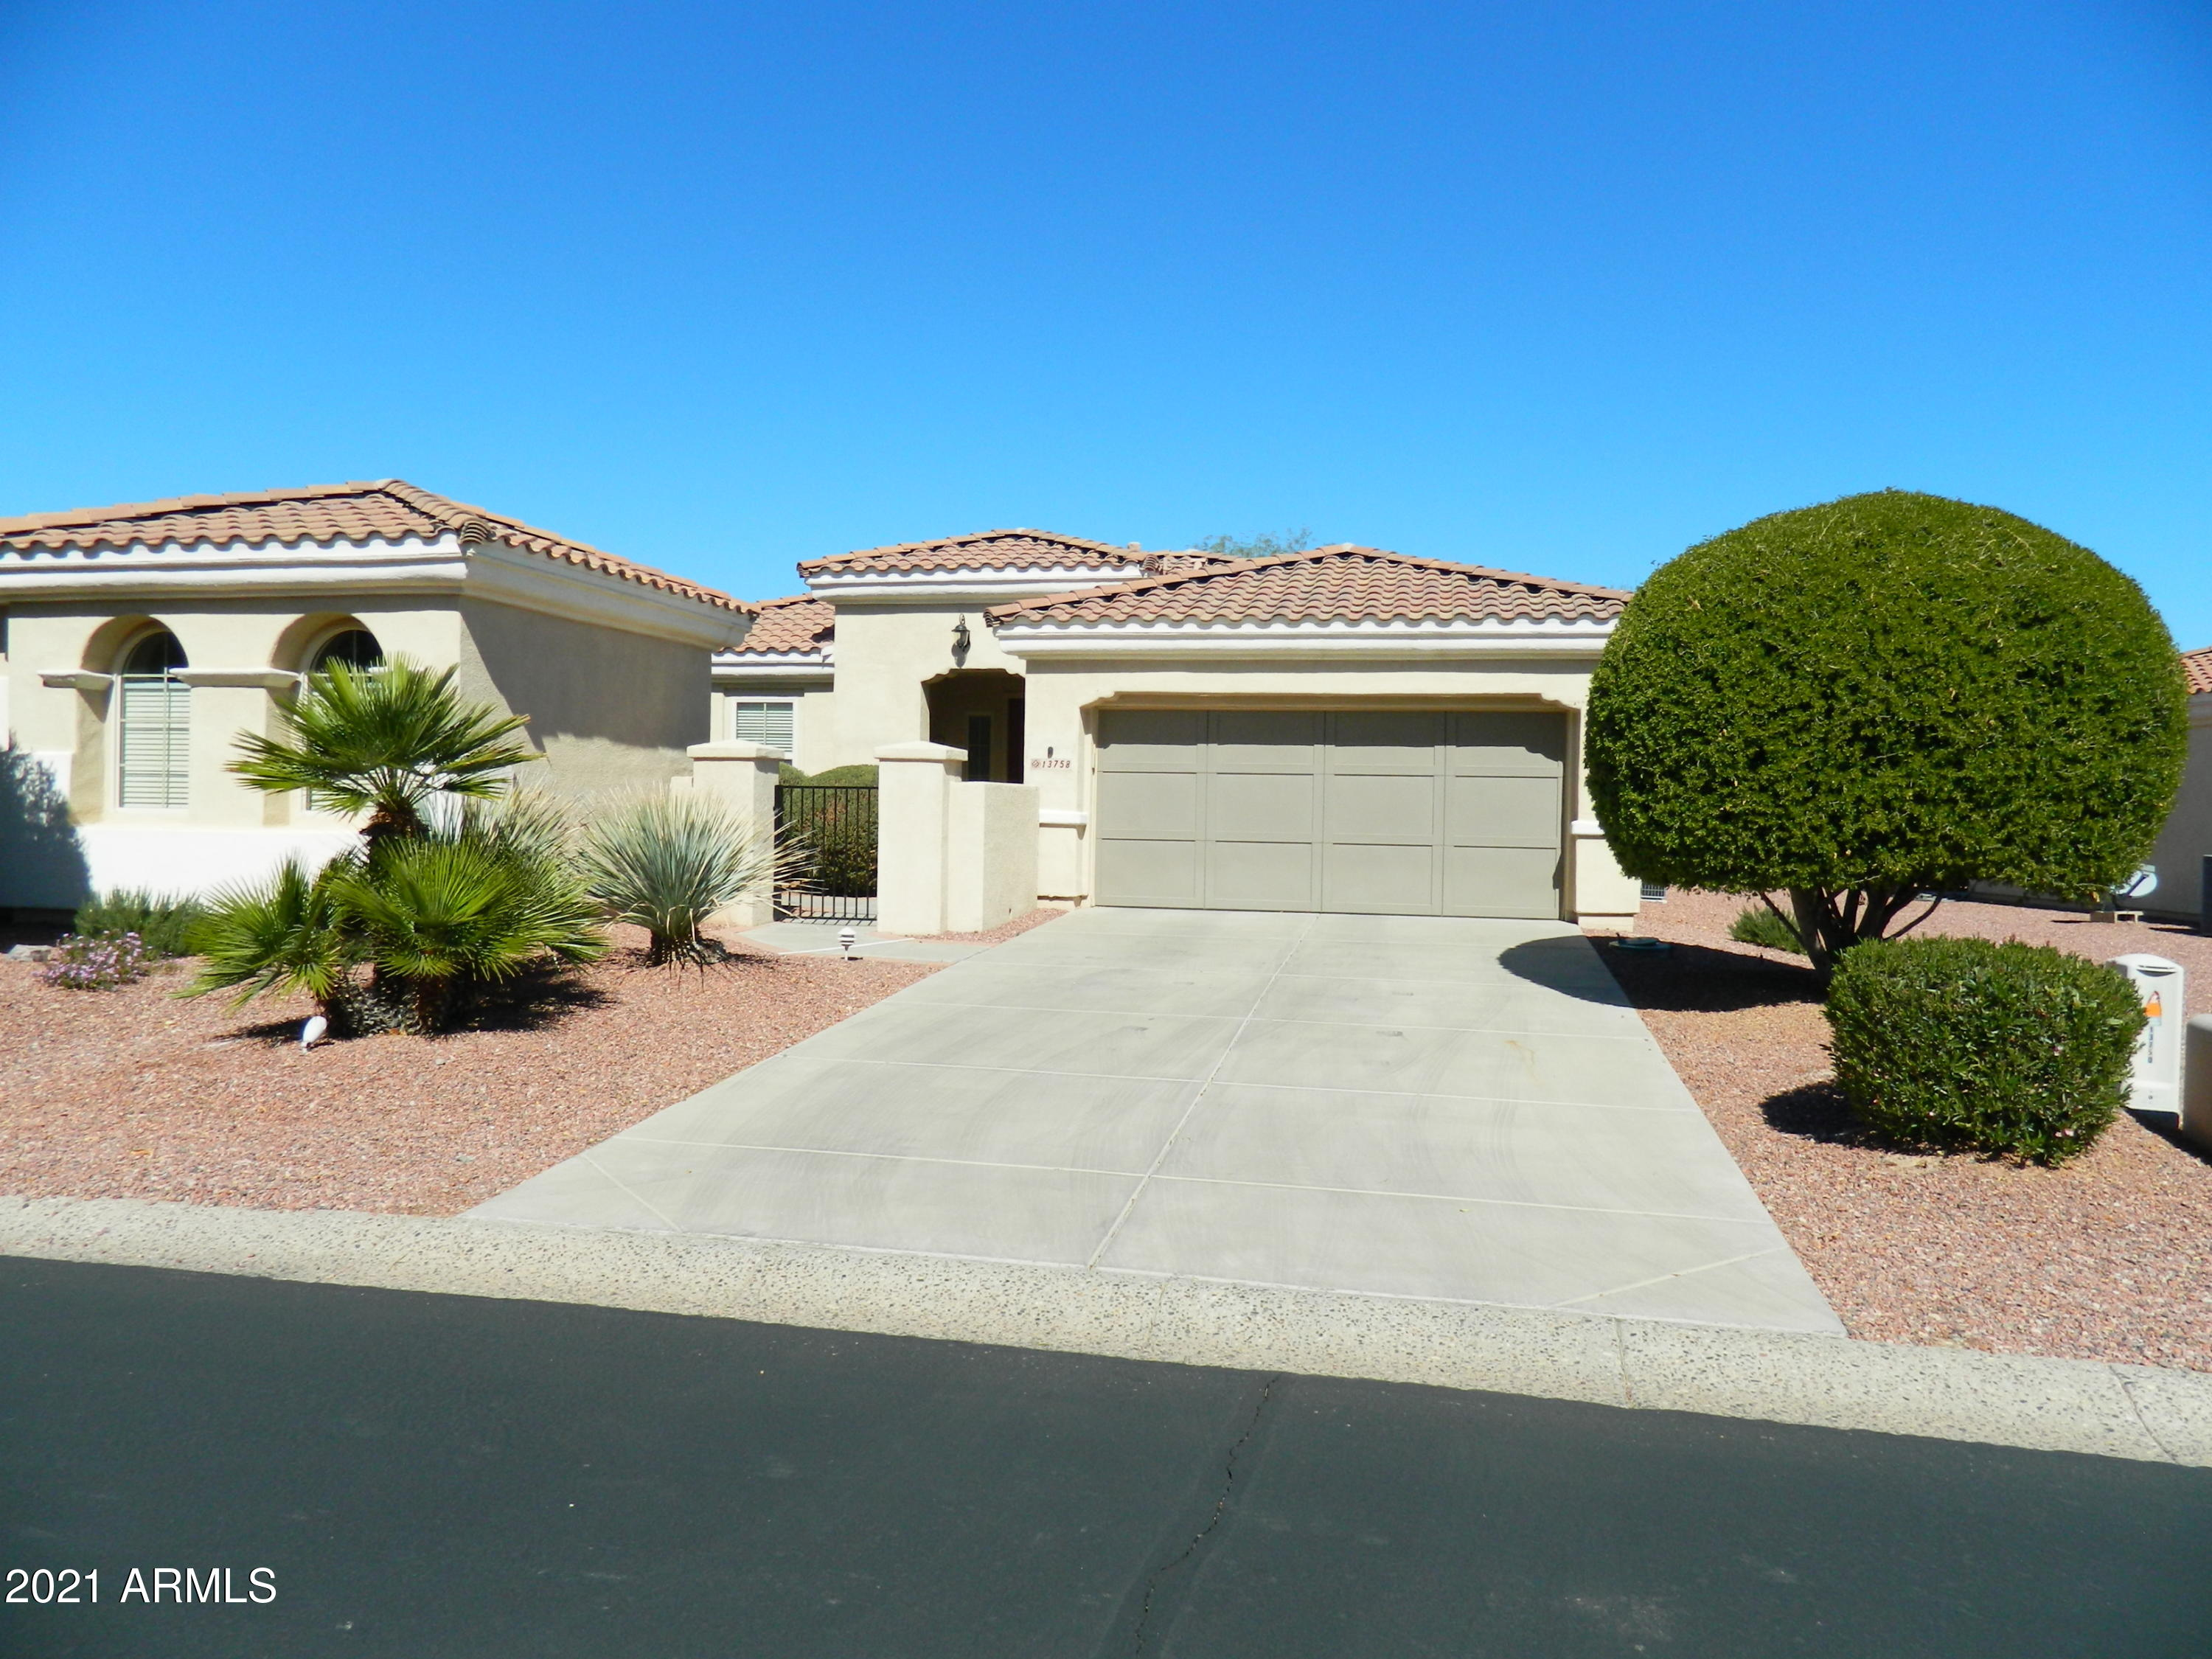 13758 W SOLA Drive, Sun City West, AZ 85375, 2 Bedrooms Bedrooms, ,Residential Lease,For Rent,13758 W SOLA Drive,6198574